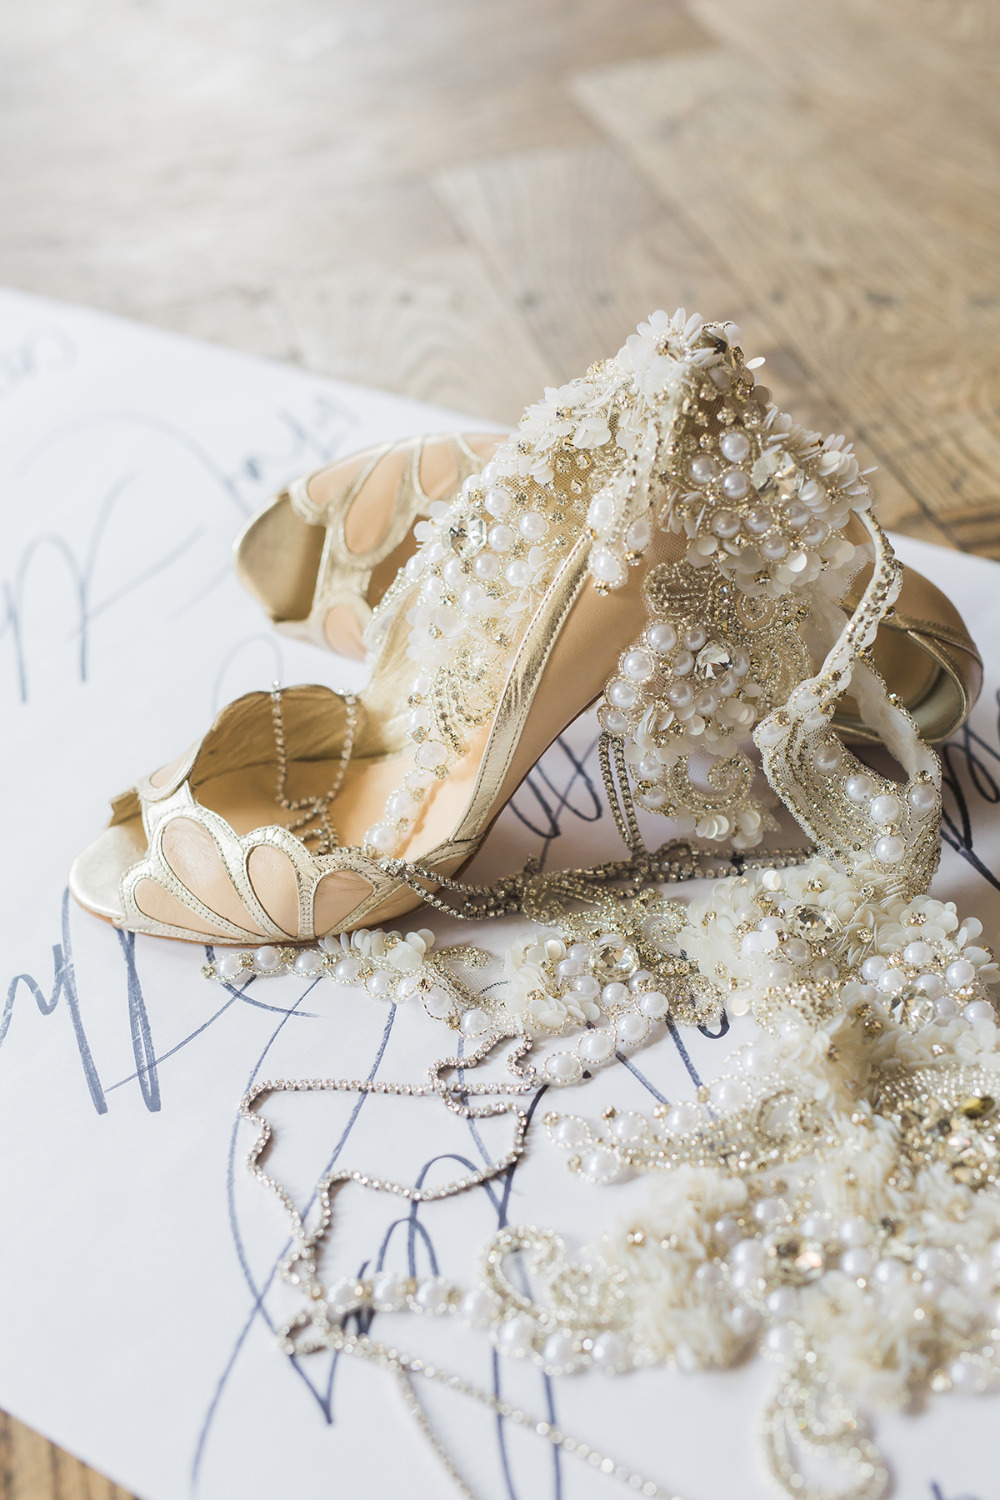 wedding shoes and bejeweled accessories